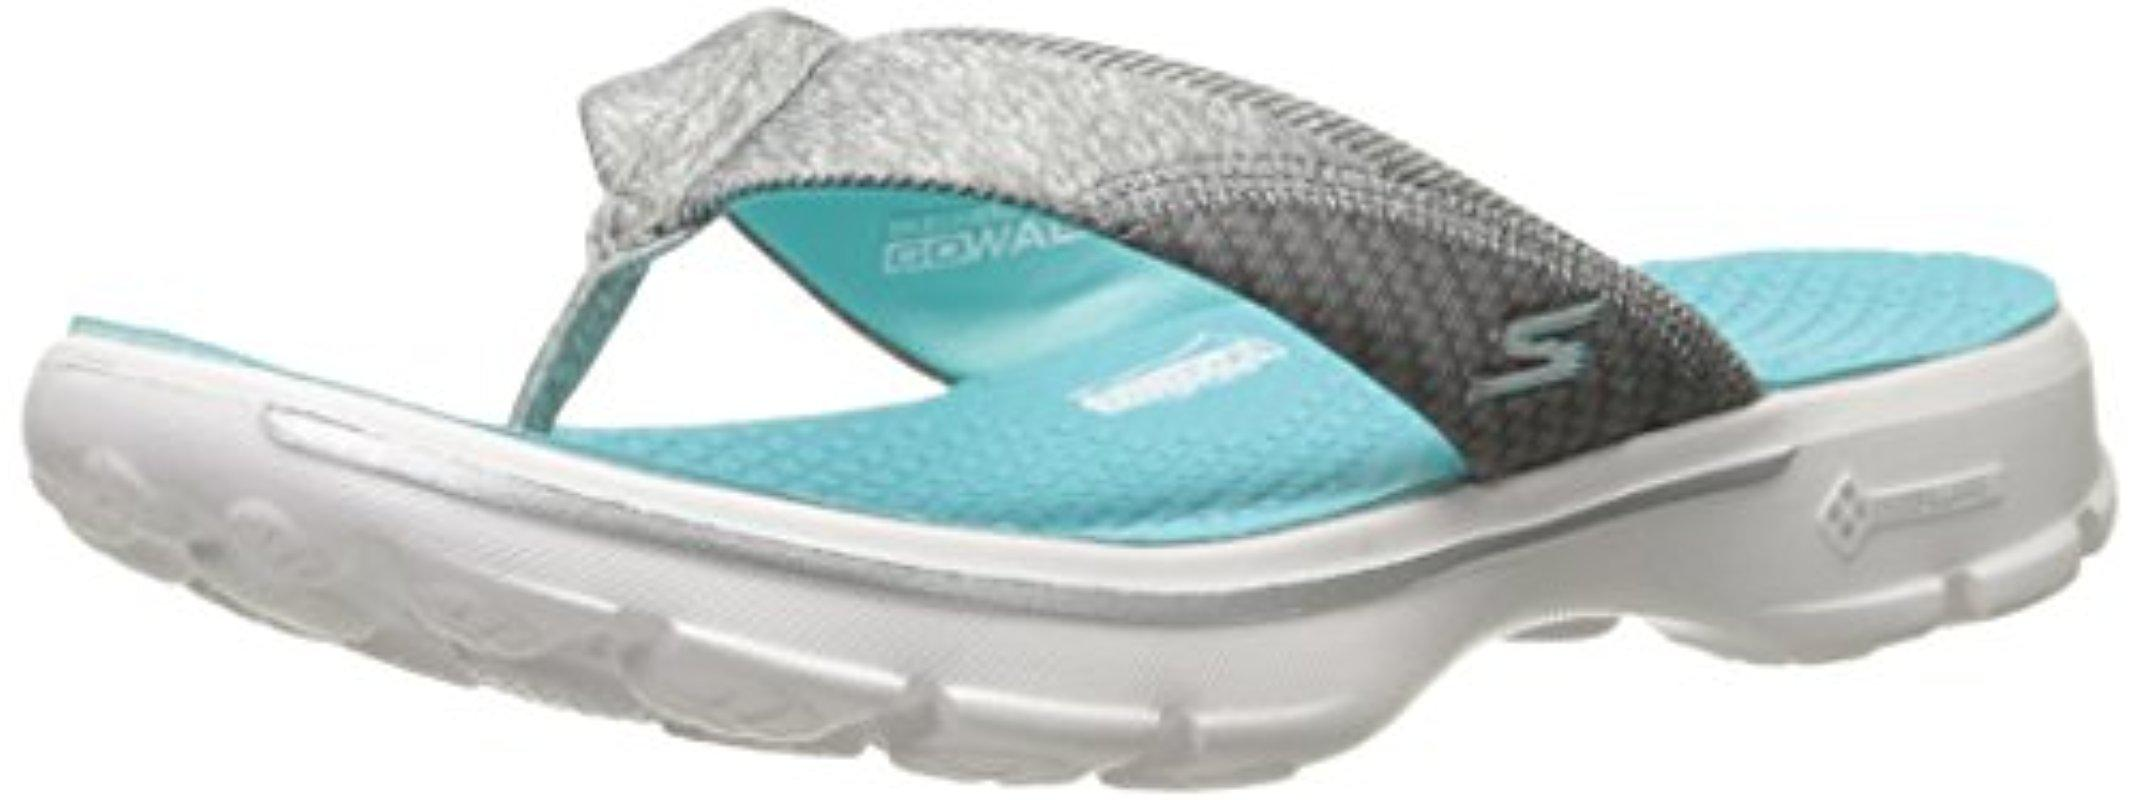 180a30fbe4ee Lyst - Skechers Performance S Go Walk Pizazz Flip-flop in Gray